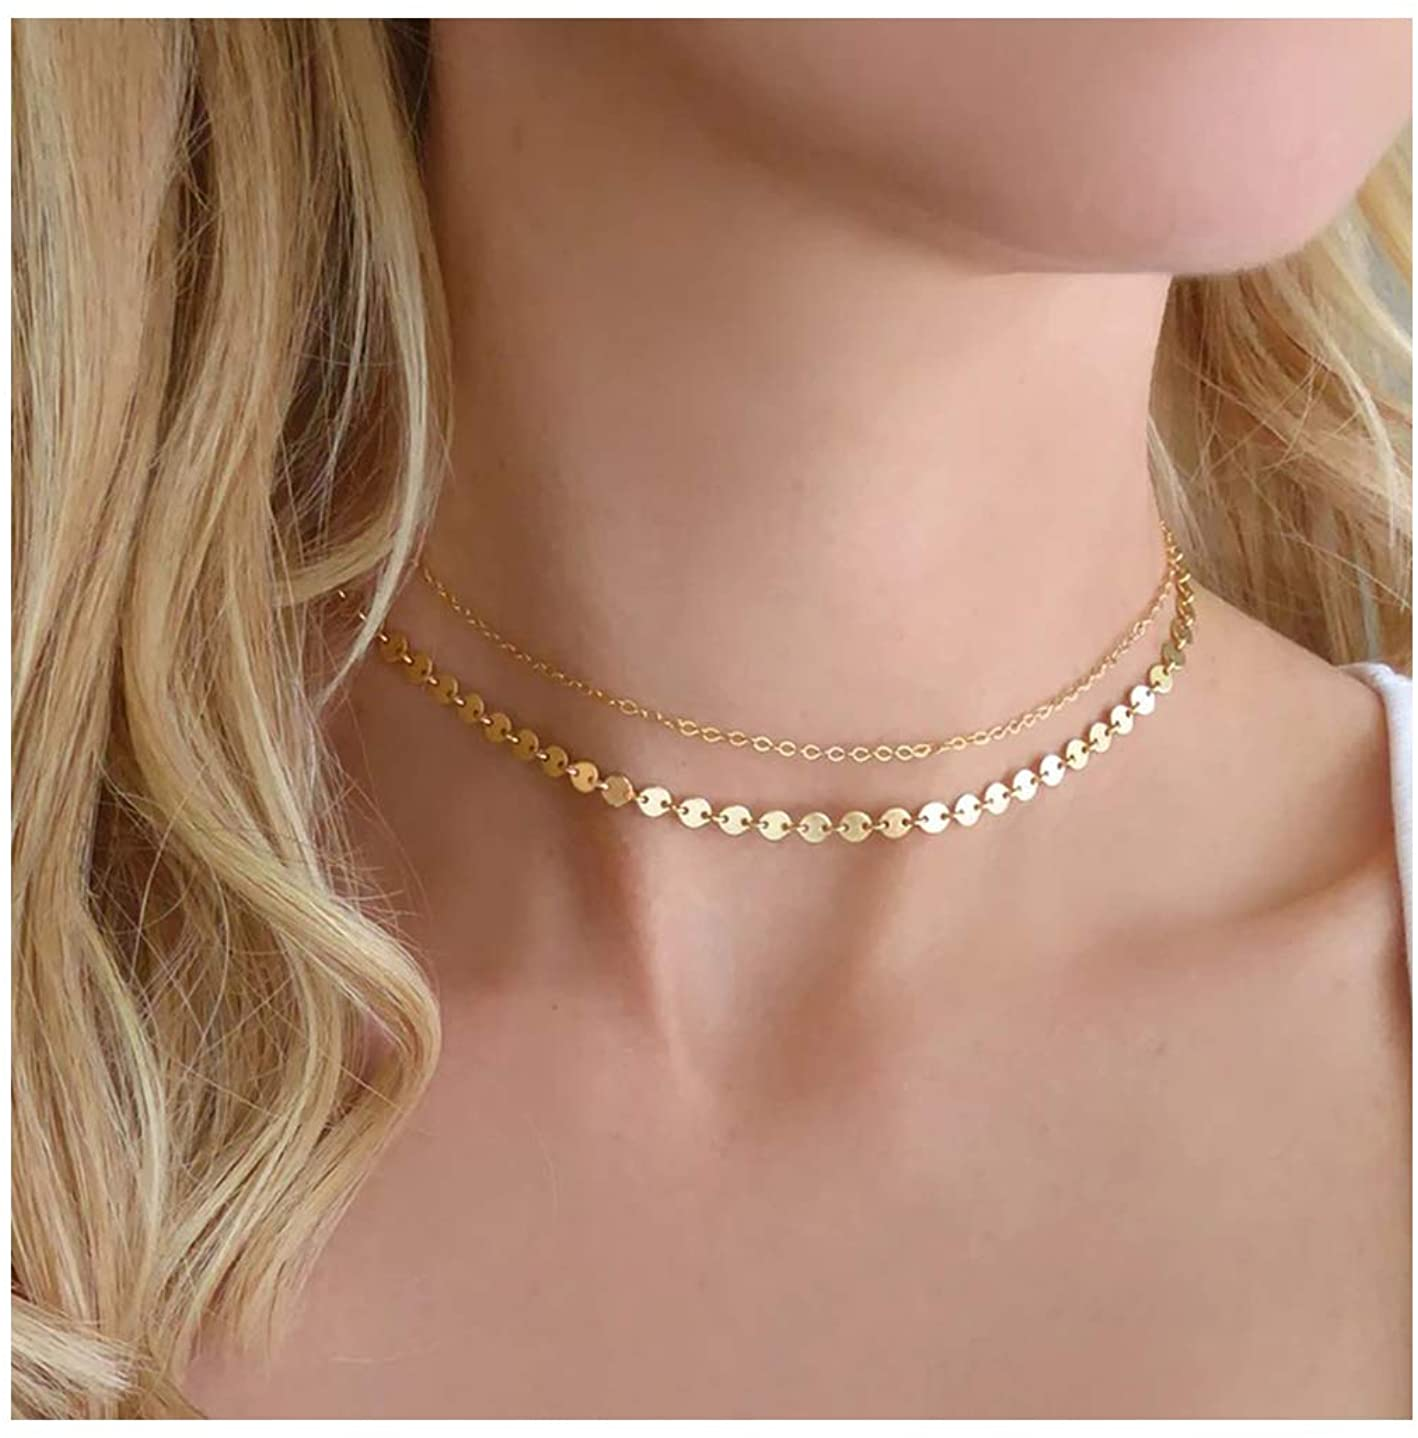 Dainty Coin Chokers Necklace Layered Disc Choker Necklace S925 Sterling Silver Star Circle Bar Pendant Necklace for Women 14K Real Gold Plated